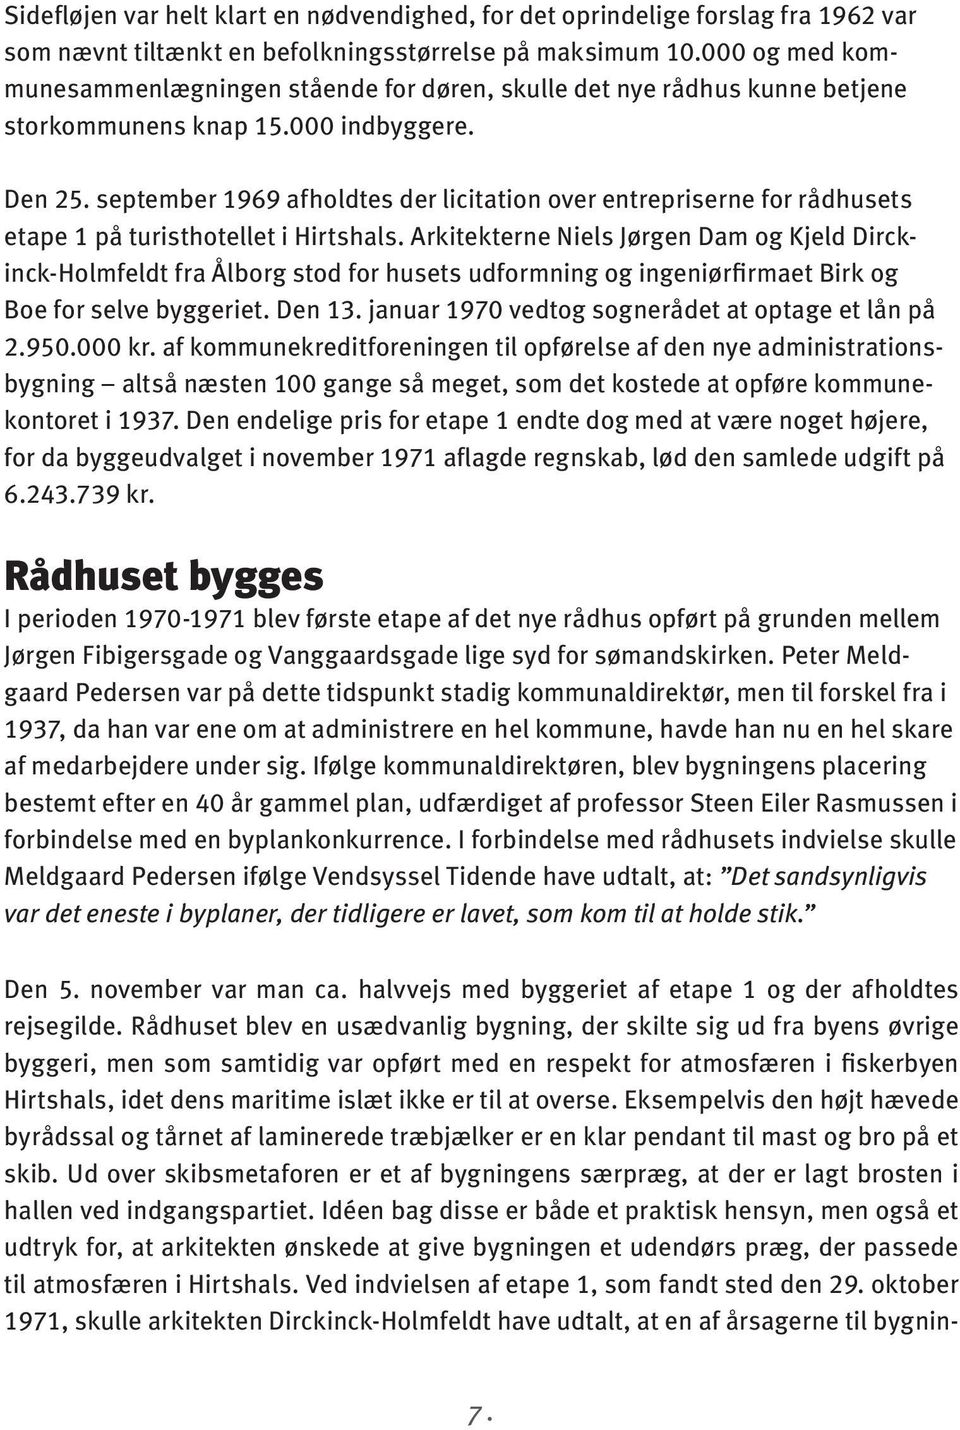 september 1969 afholdtes der licitation over entrepriserne for rådhusets etape 1 på turisthotellet i Hirtshals.